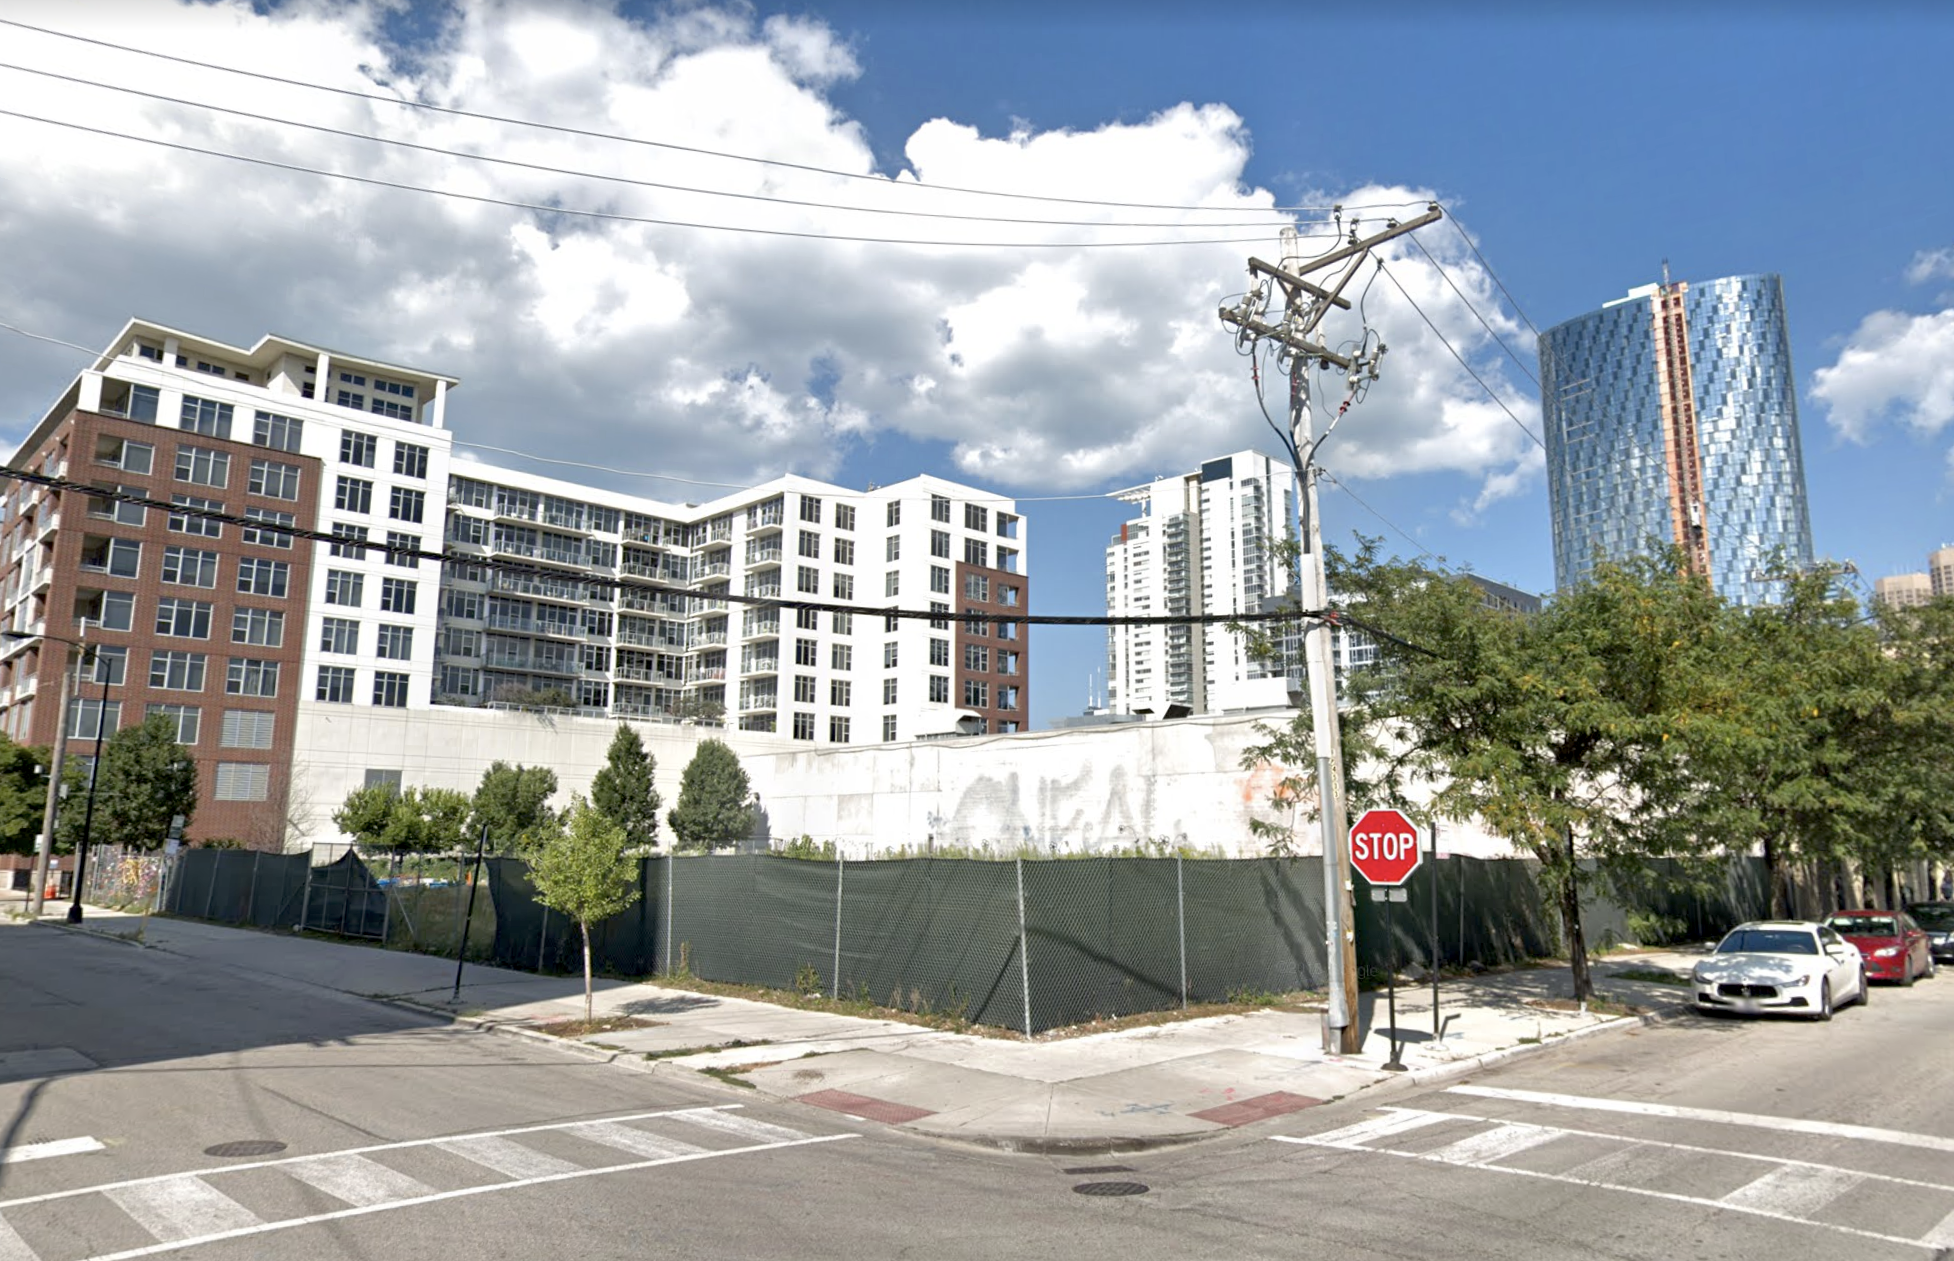 24-story residential tower in the works for vacant West Loop lot